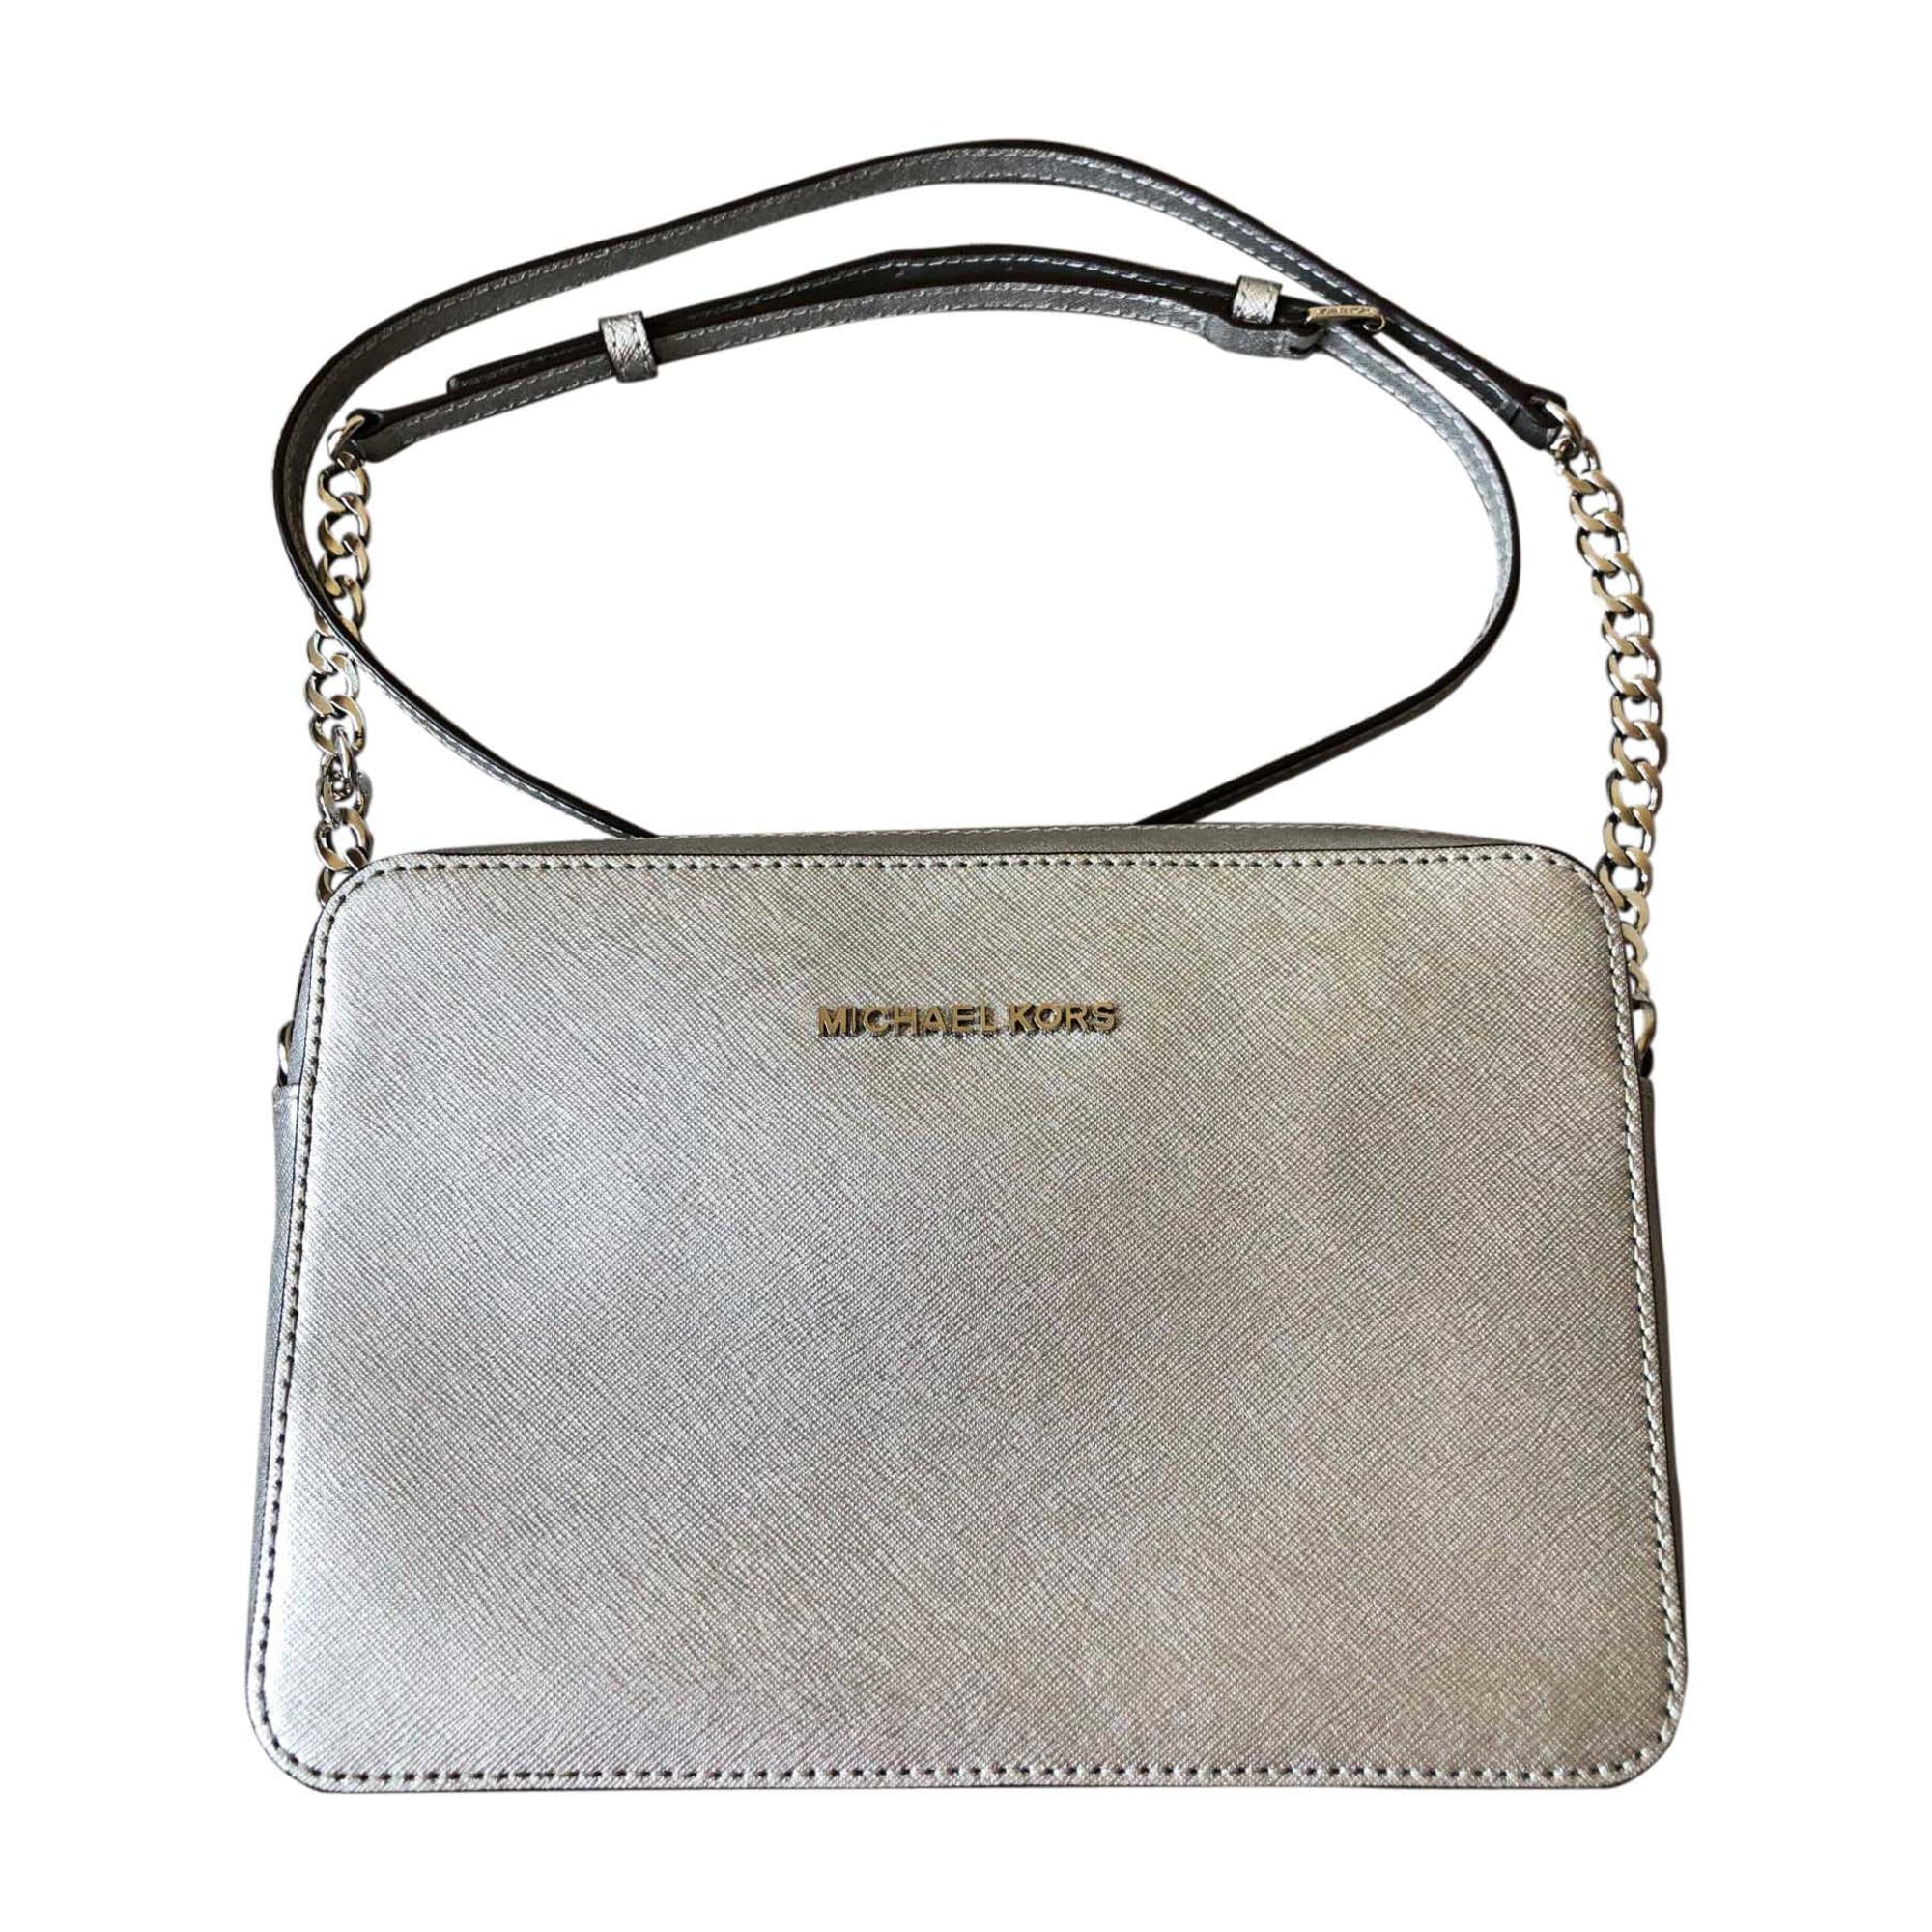 Leather Shoulder Bag MICHAEL KORS Silver